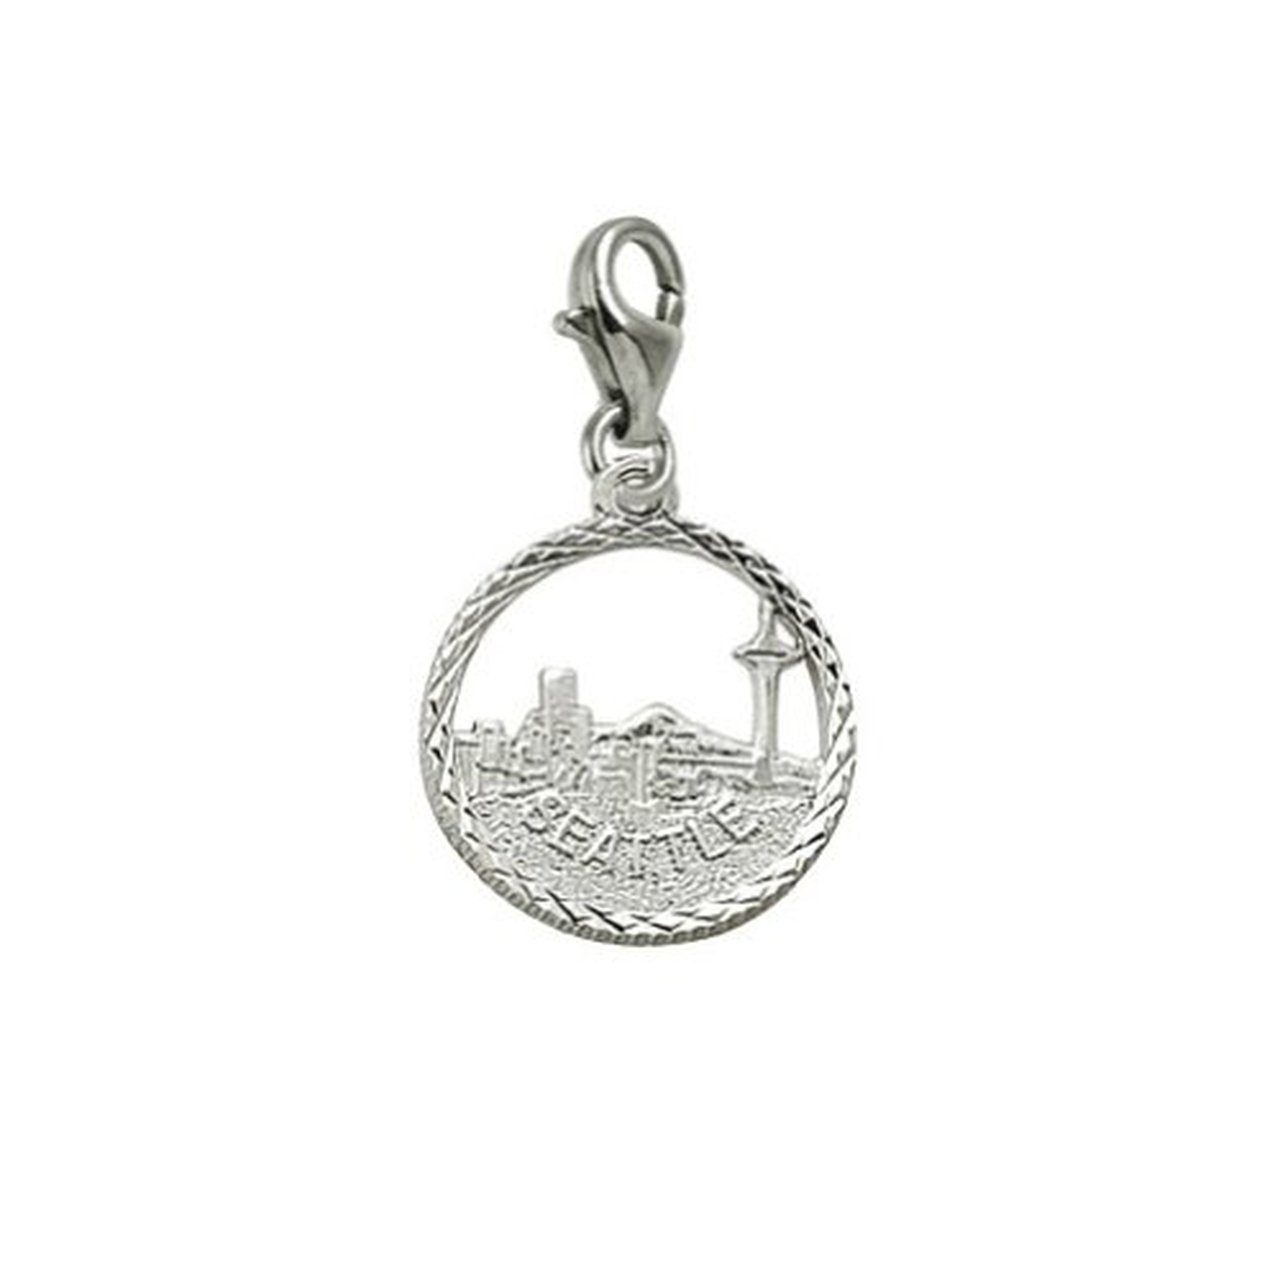 Charms for Bracelets and Necklaces Seattle Skyline Charm With Lobster Claw Clasp